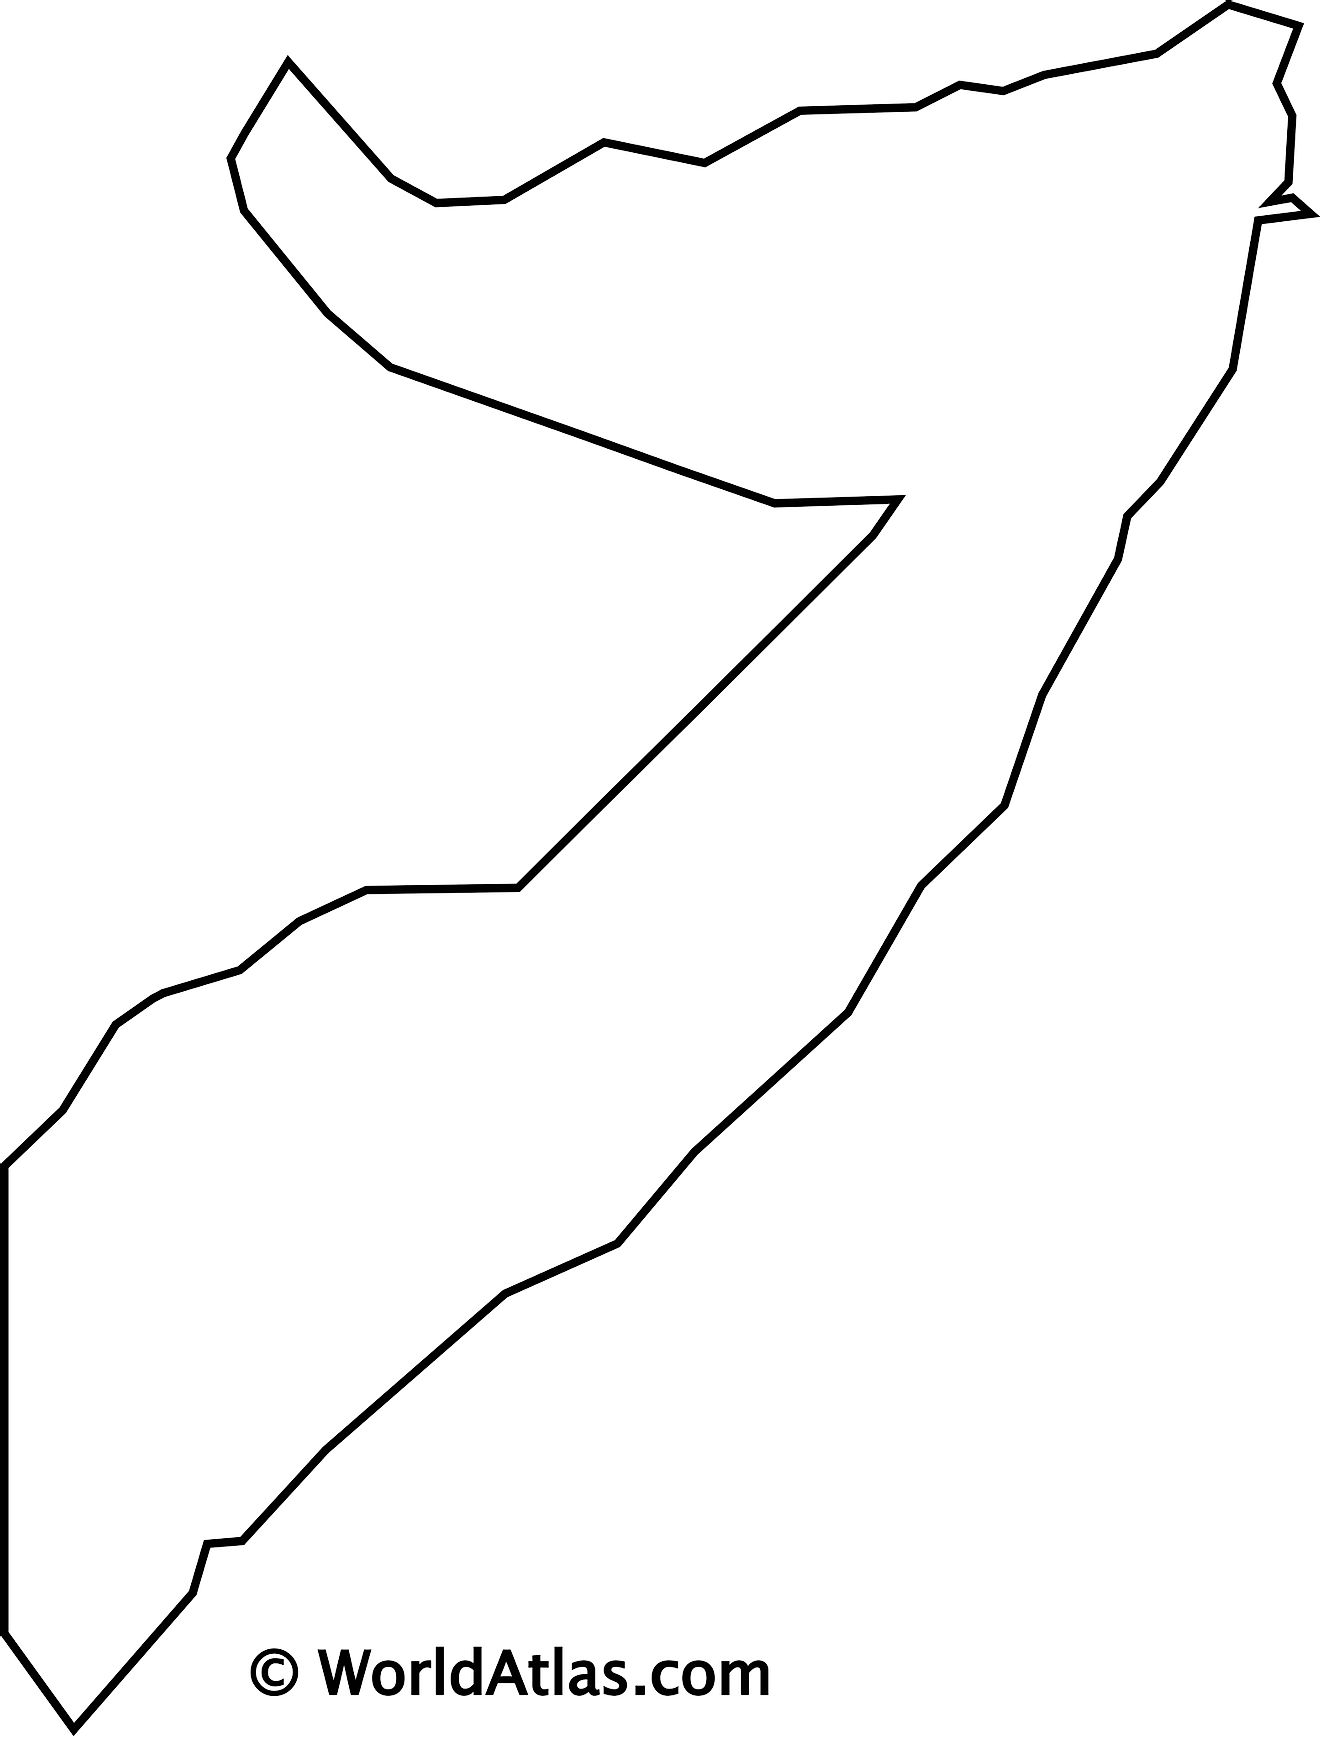 Blank Outline Map of Somalia